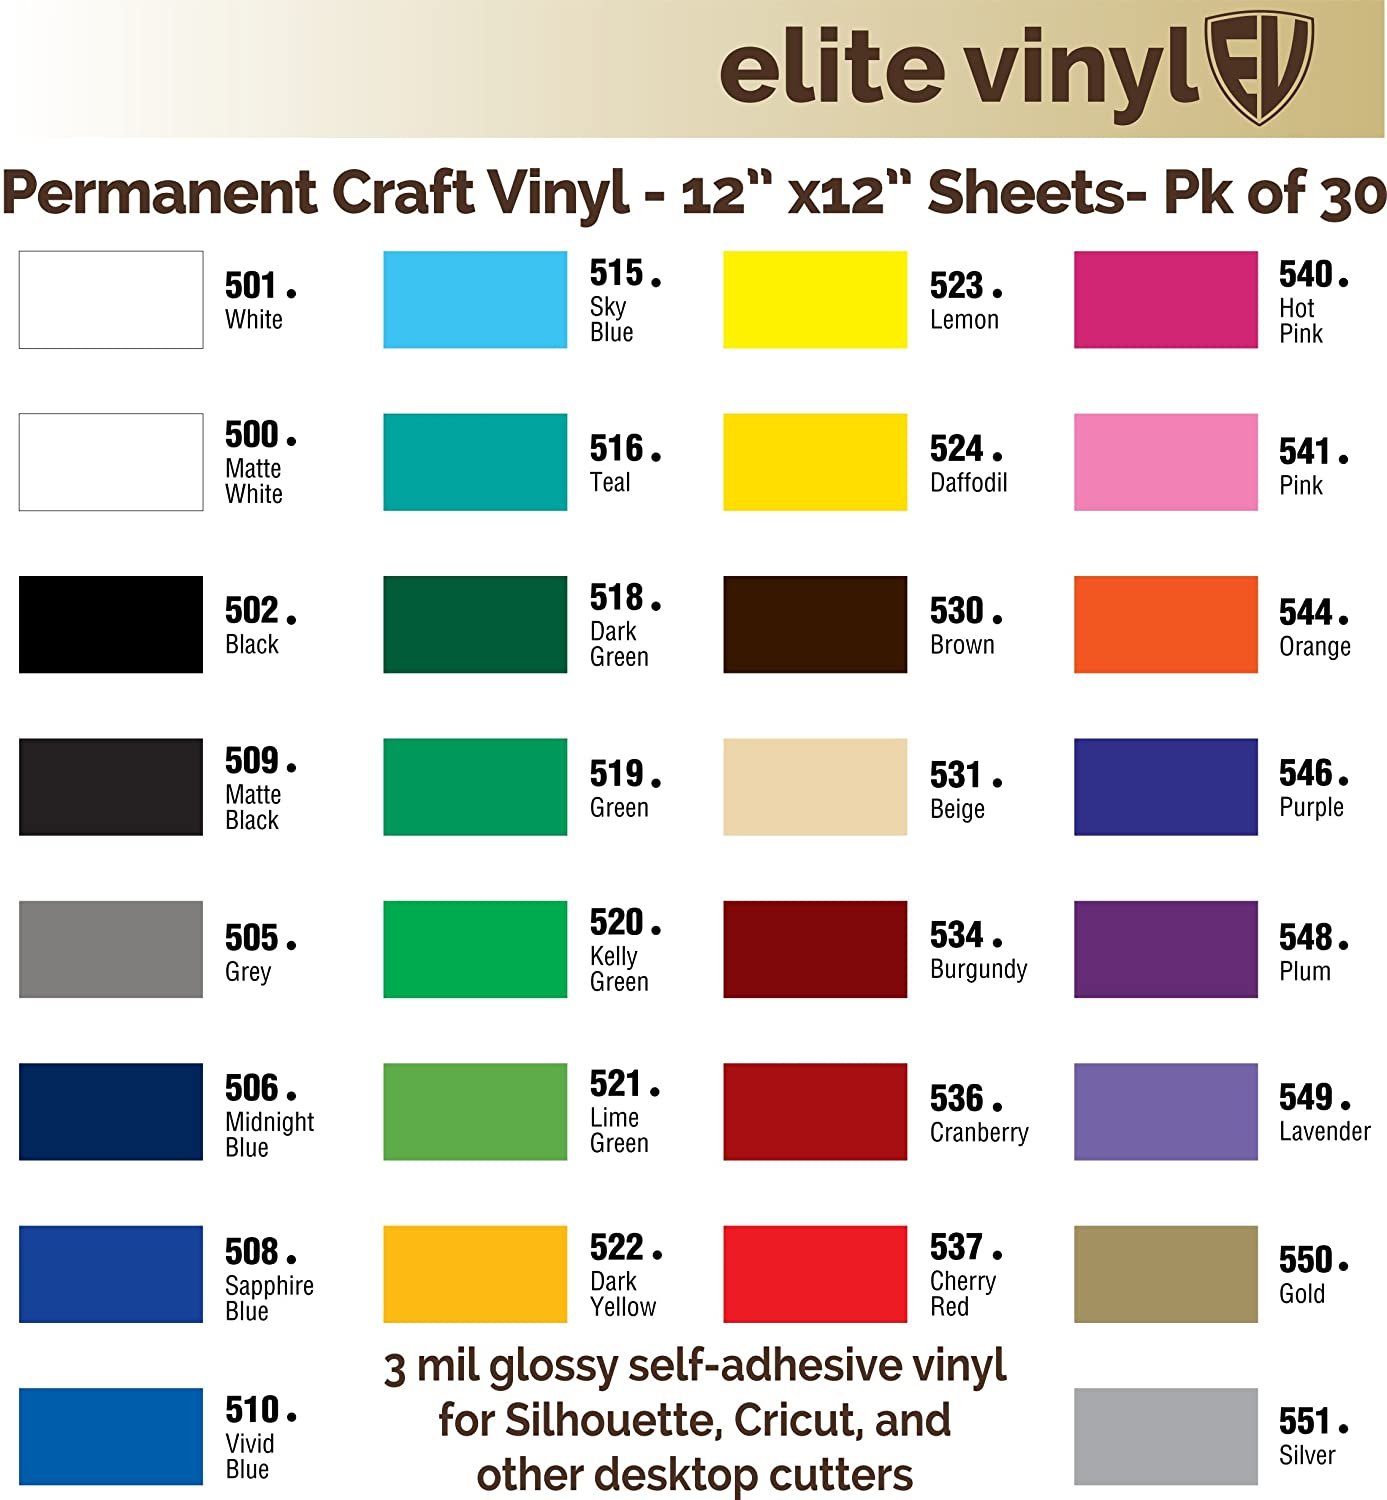 amazoncom 30 sheet pack 12 x 12 glossy outdoor vinyl for silhouette cricut and similar cutters ev121s arts crafts sewing - Cricut Vinyl Colors